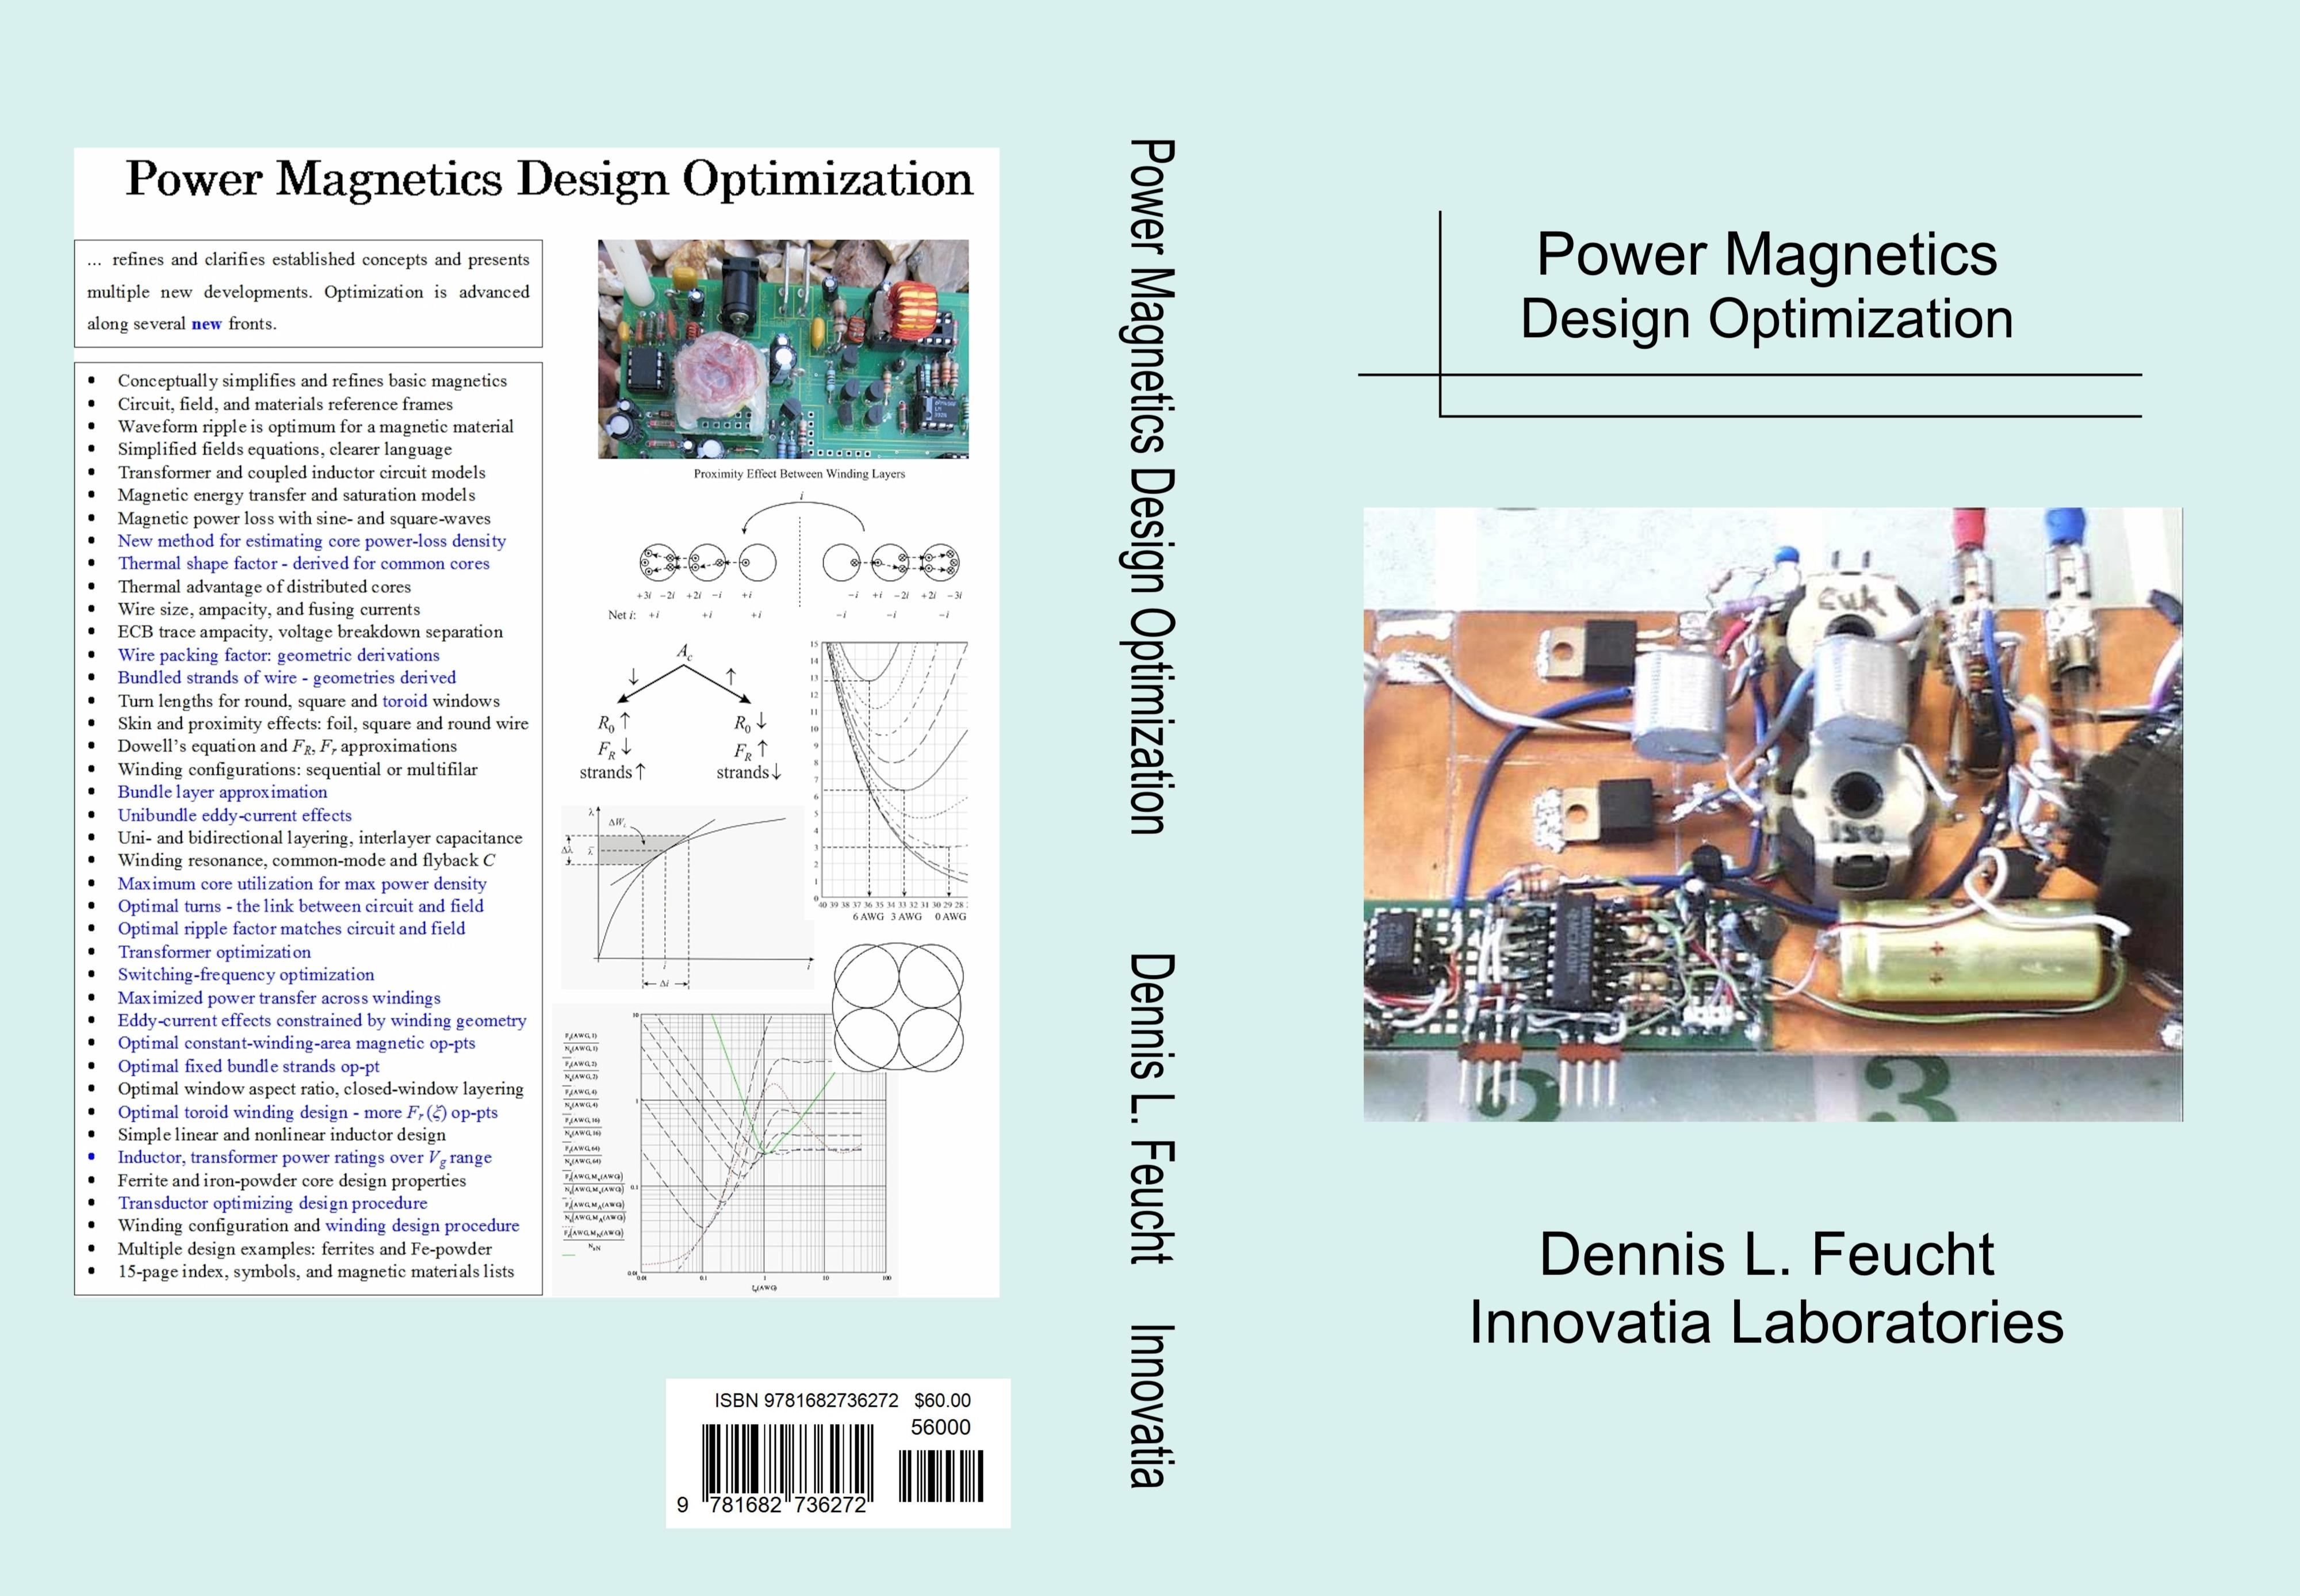 Power Magnetics Design Optimization cover image